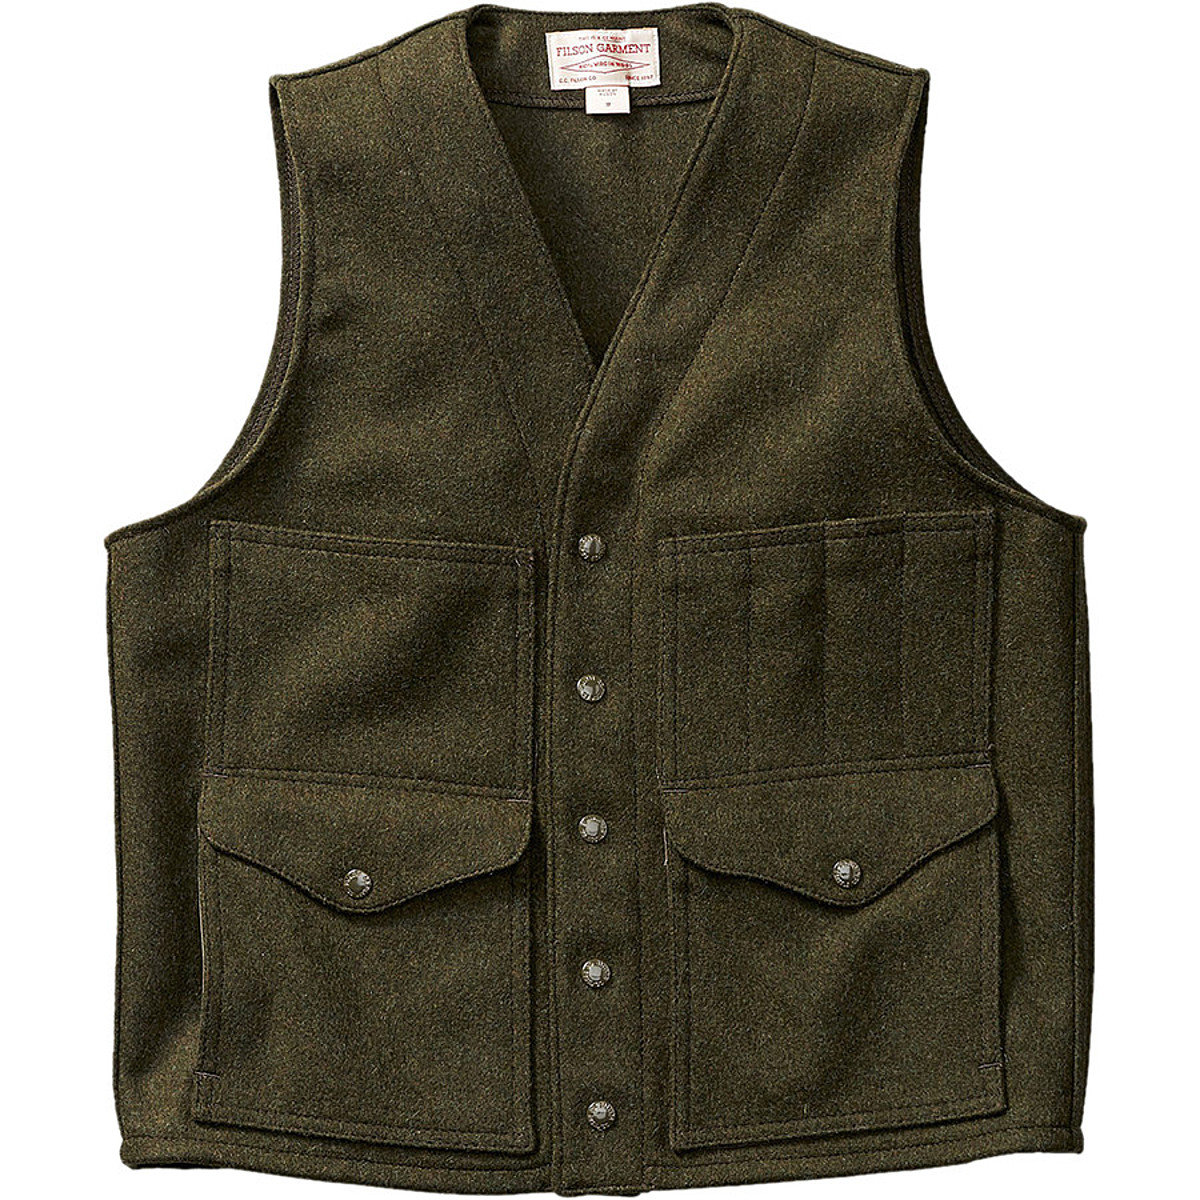 Filson Cruiser Mackinaw Wool Vest